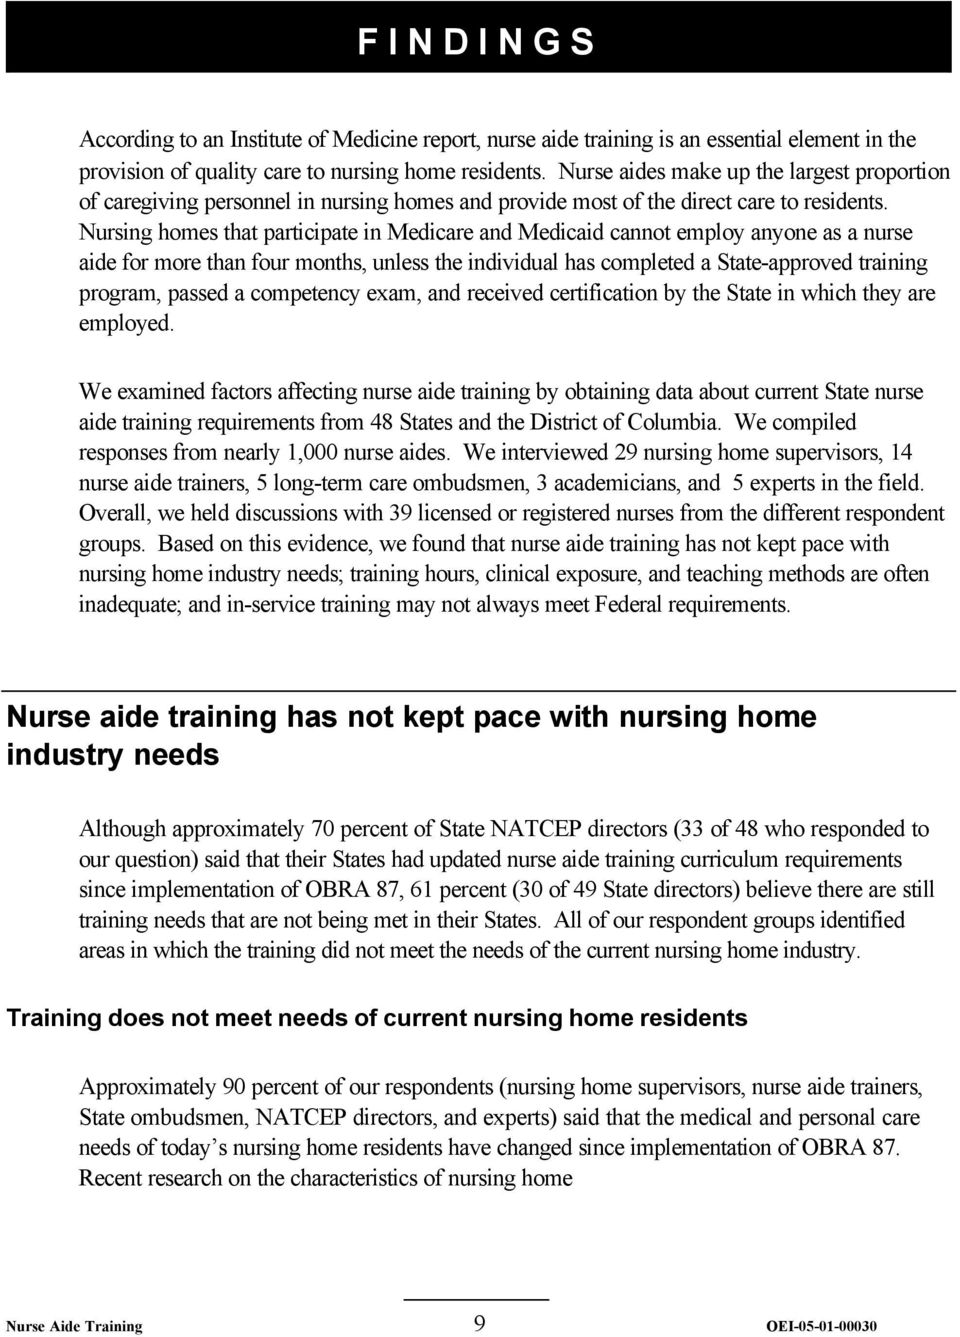 Nursing homes that participate in Medicare and Medicaid cannot employ anyone as a nurse aide for more than four months, unless the individual has completed a State-approved training program, passed a